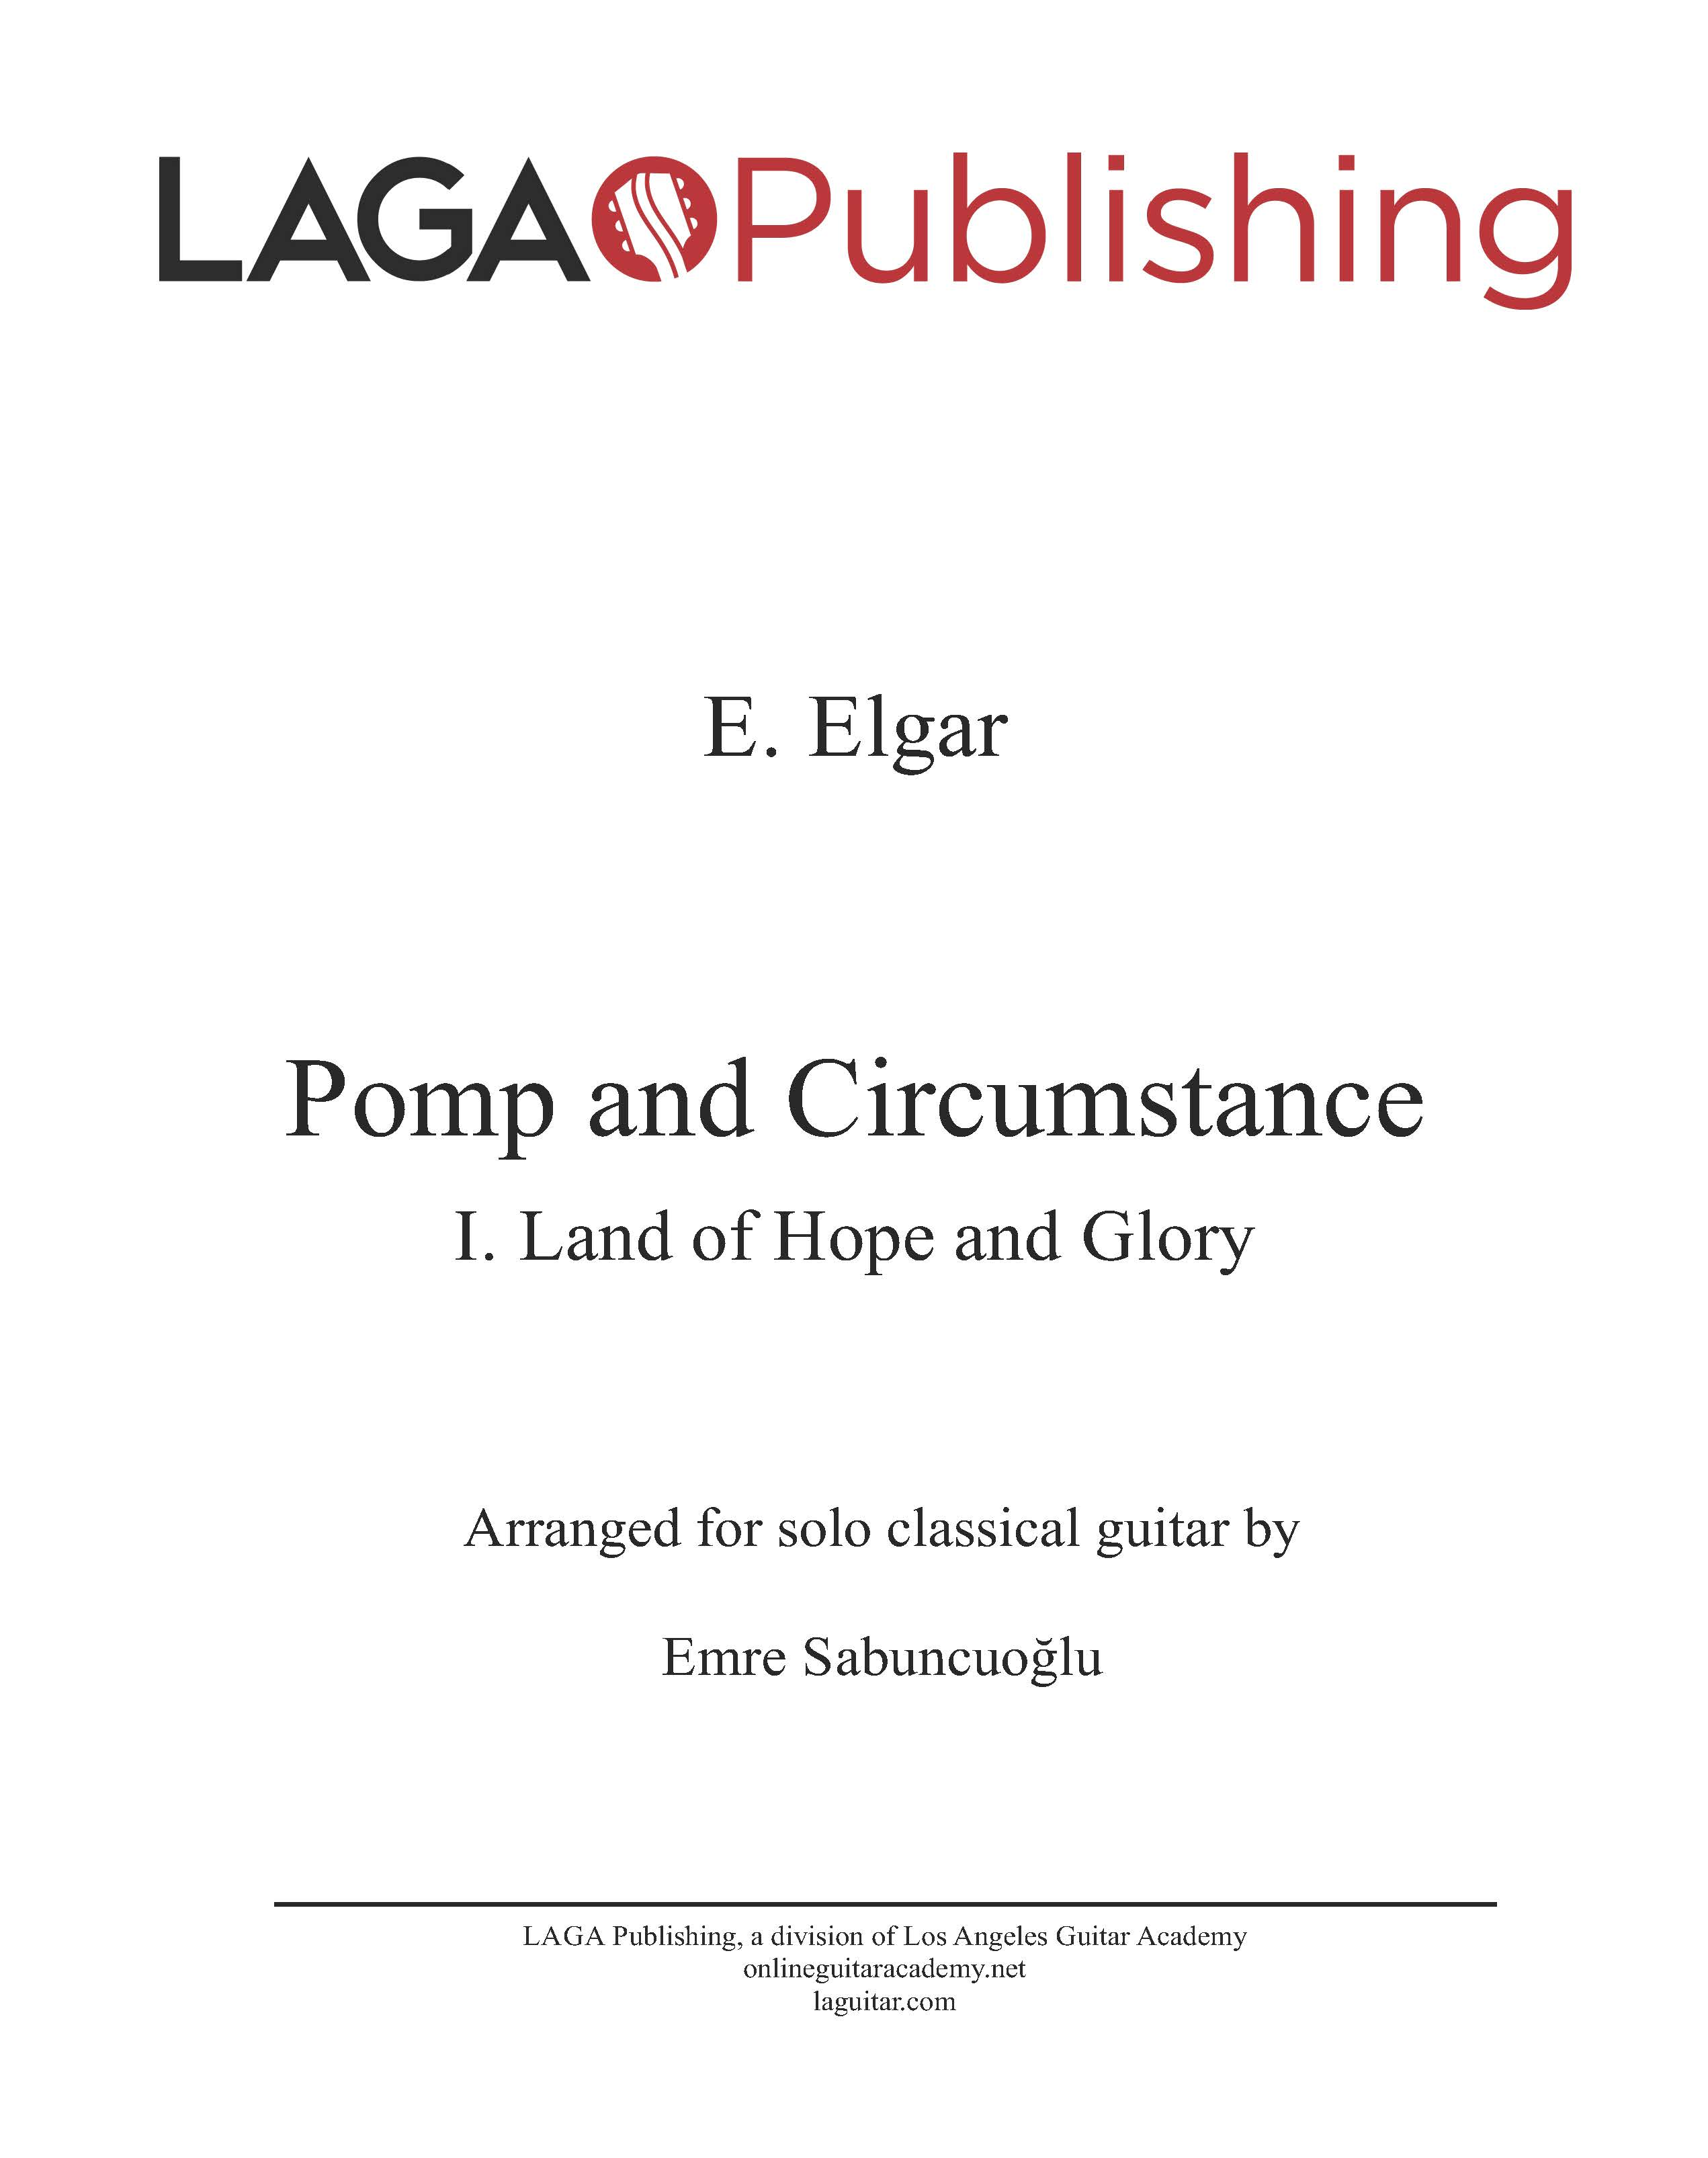 Pomp and circumstance by e elgar classical for Pomp and circumstance